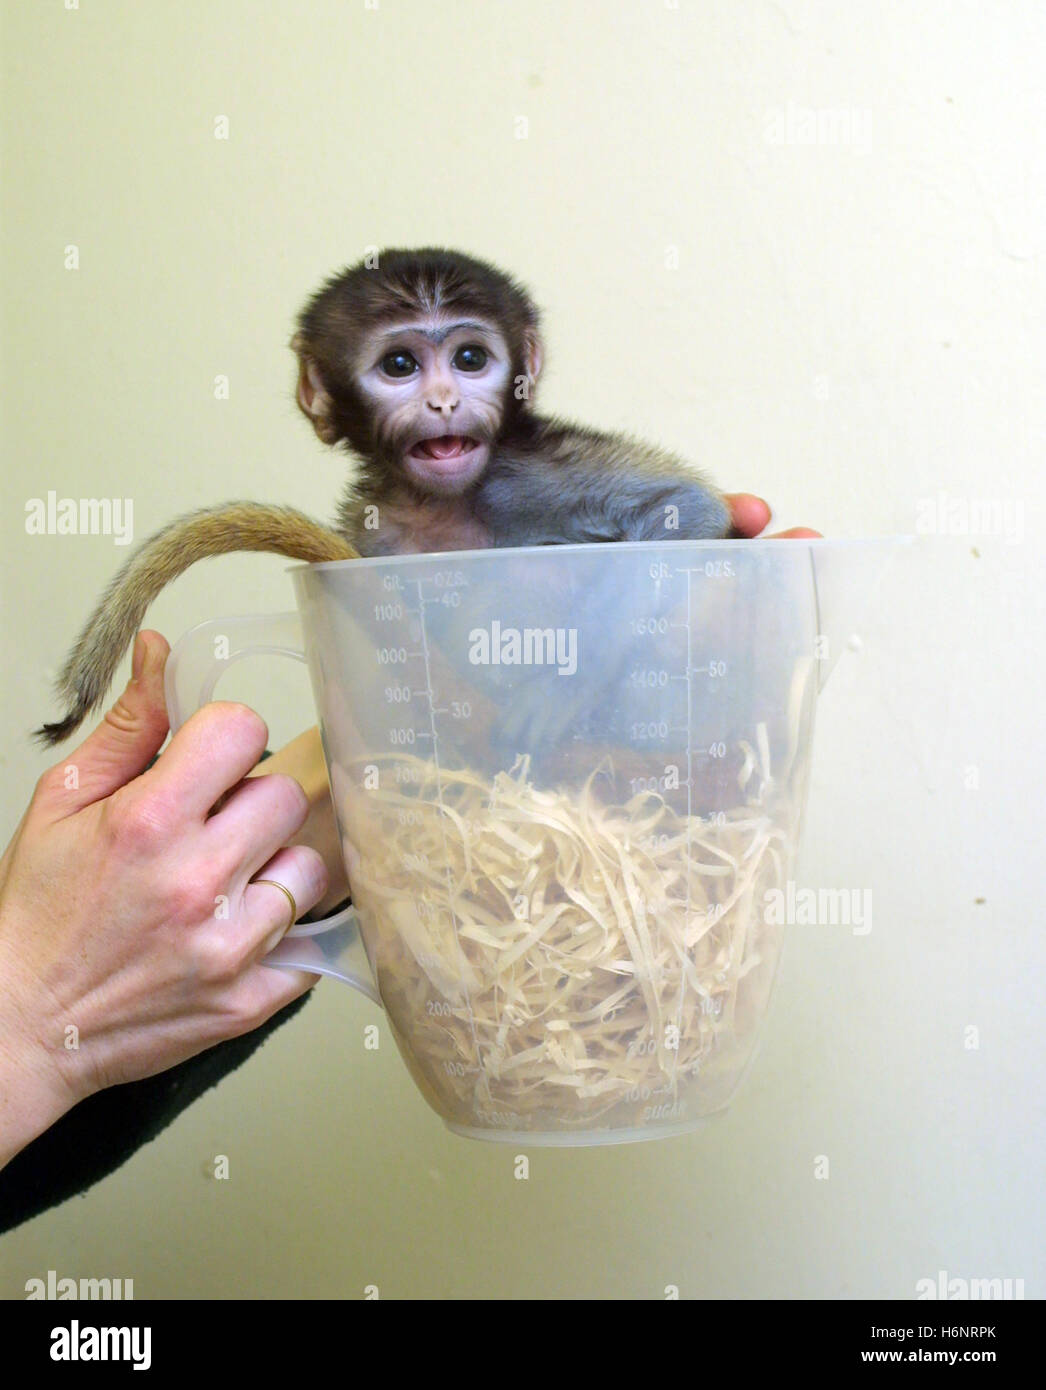 baby-patas-monkey-in-a-plastic-jug-H6NRP